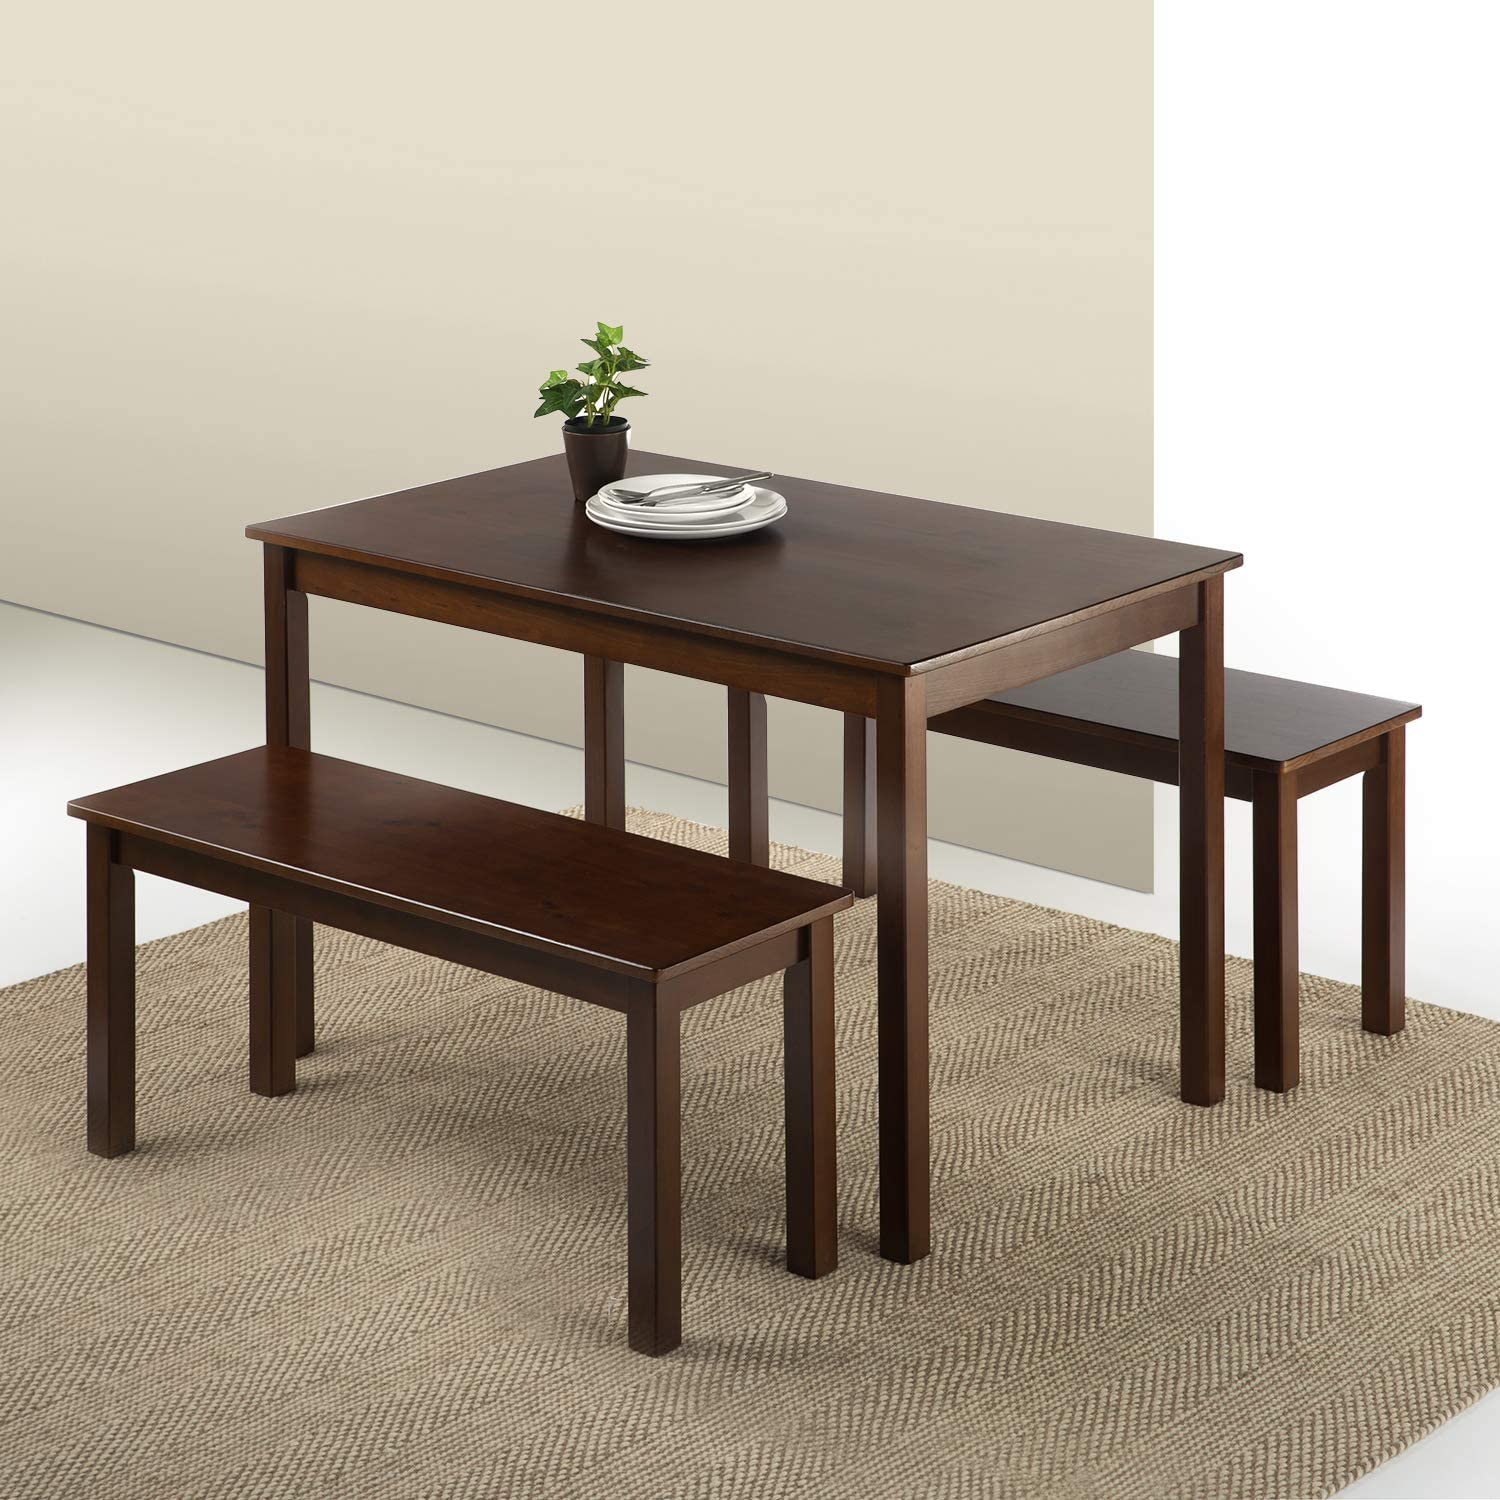 Amazon Com Zinus Juliet Espresso Wood Dining Table With Two Benches 3 Piece Set Tables